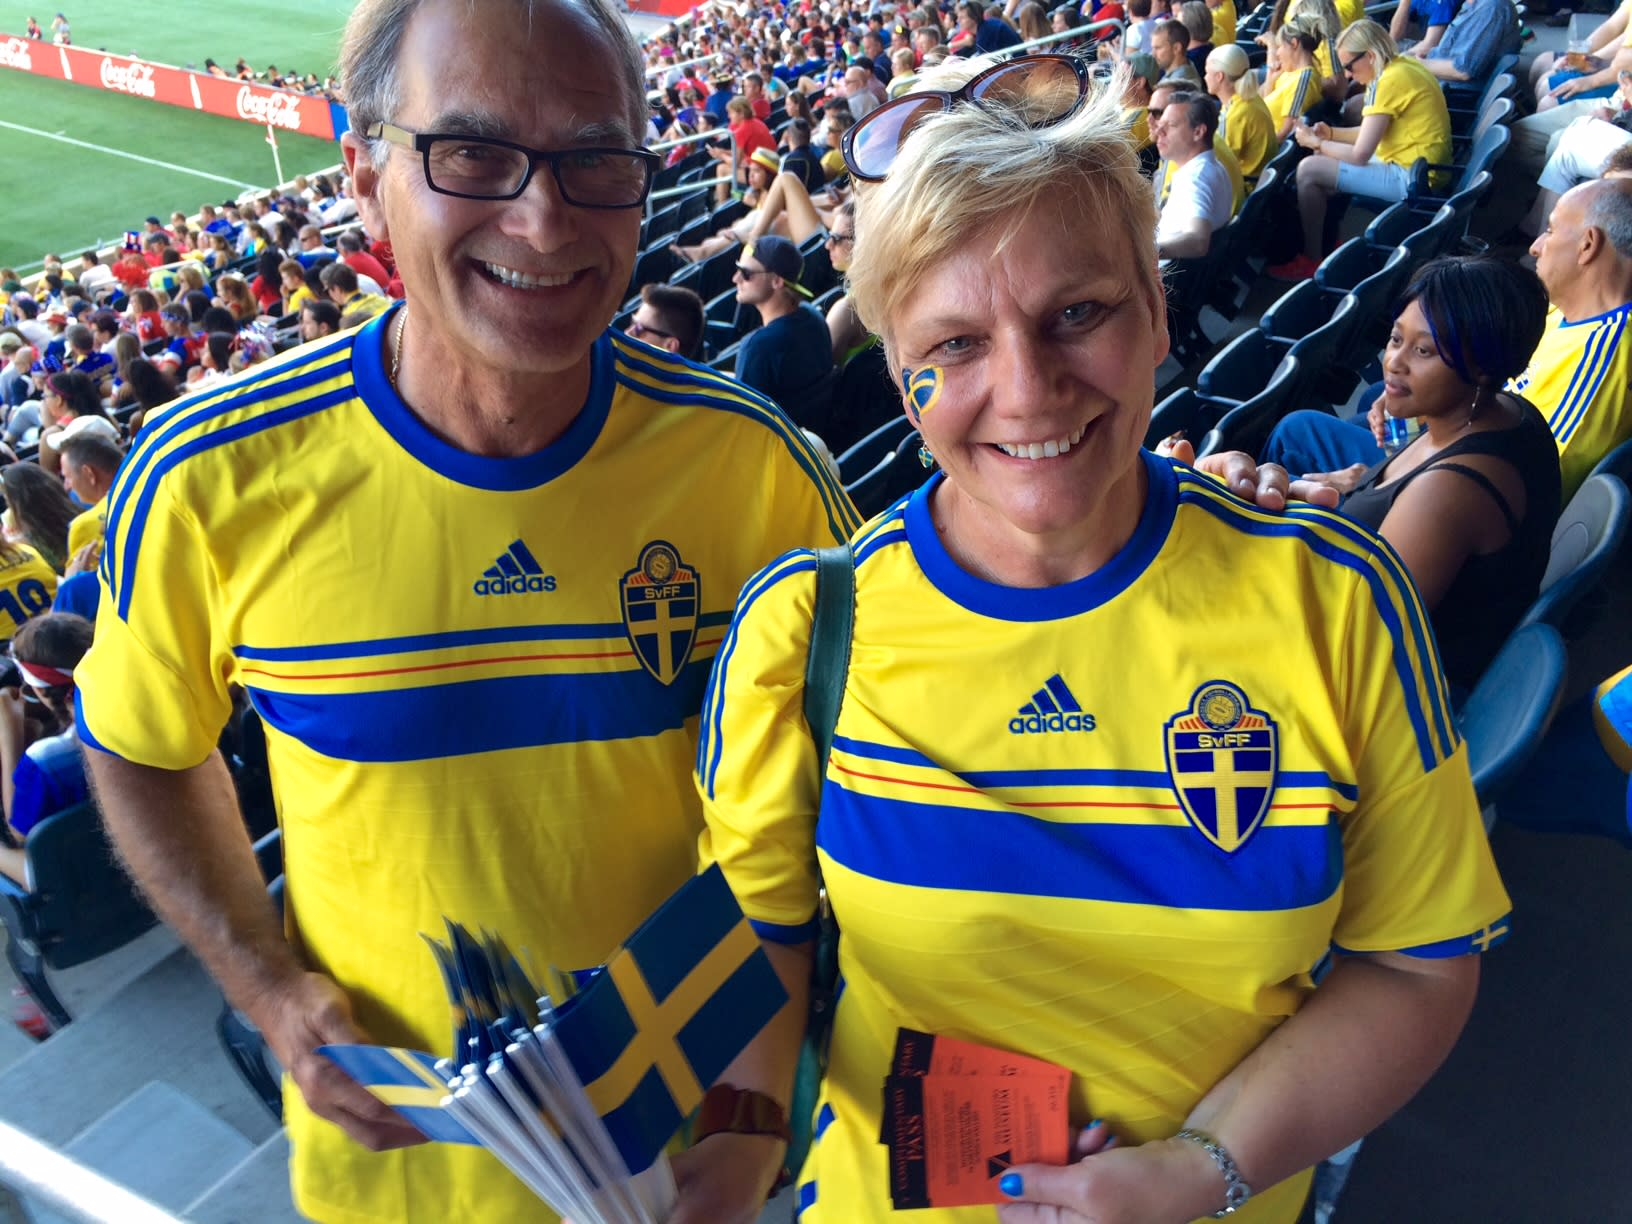 Sweden fans at FIFA Women's World Cup.